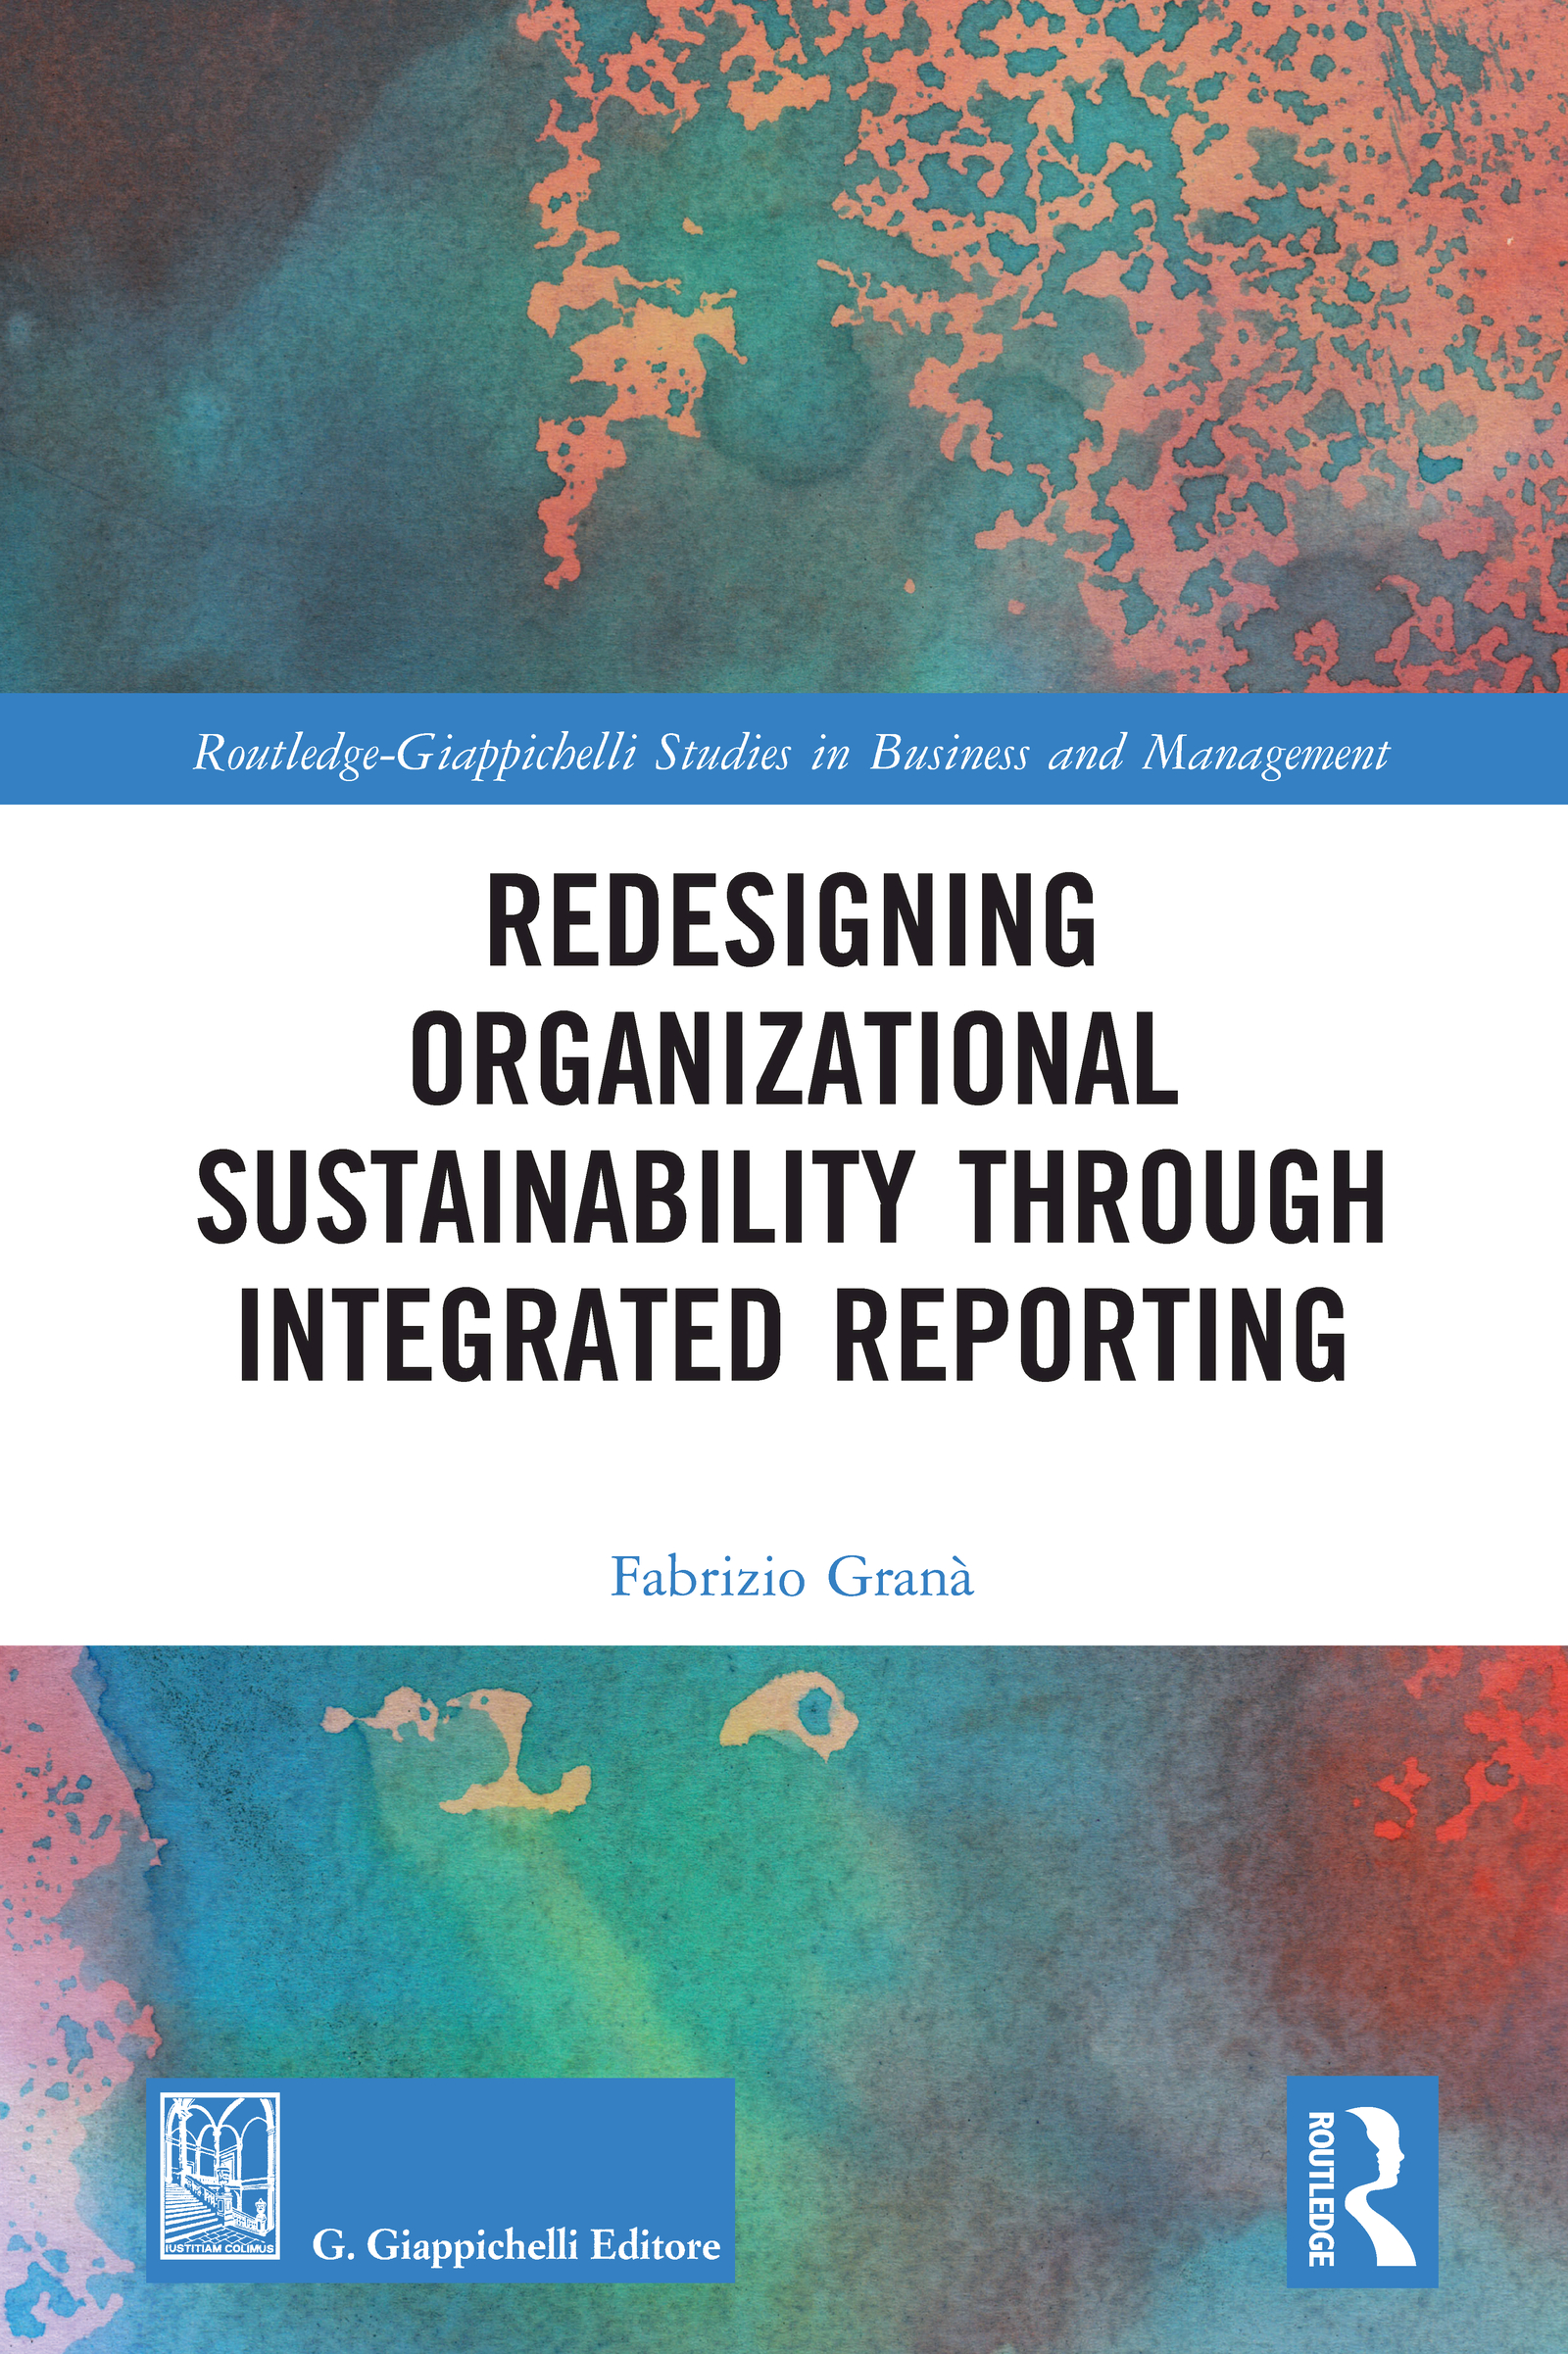 Representing Sustainability Within Corporate Reporting: Criticisms and Implications